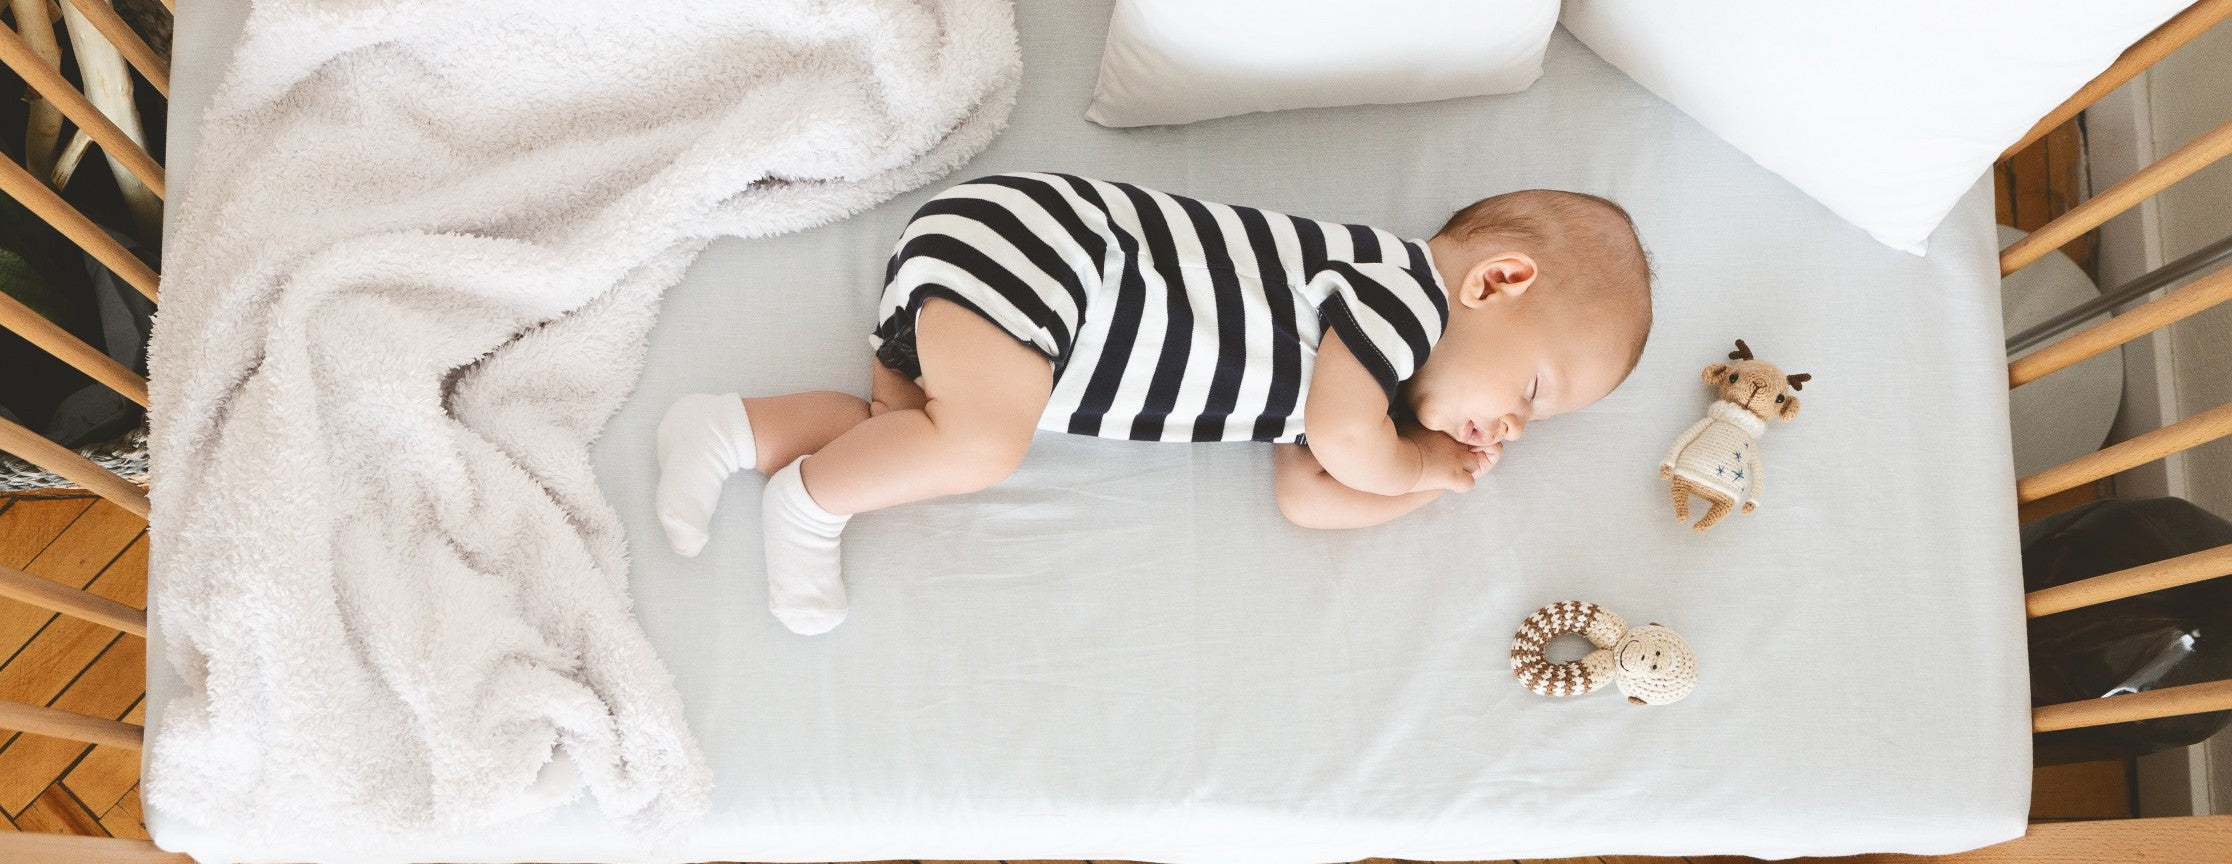 Baby napping on his side in a wooden crib